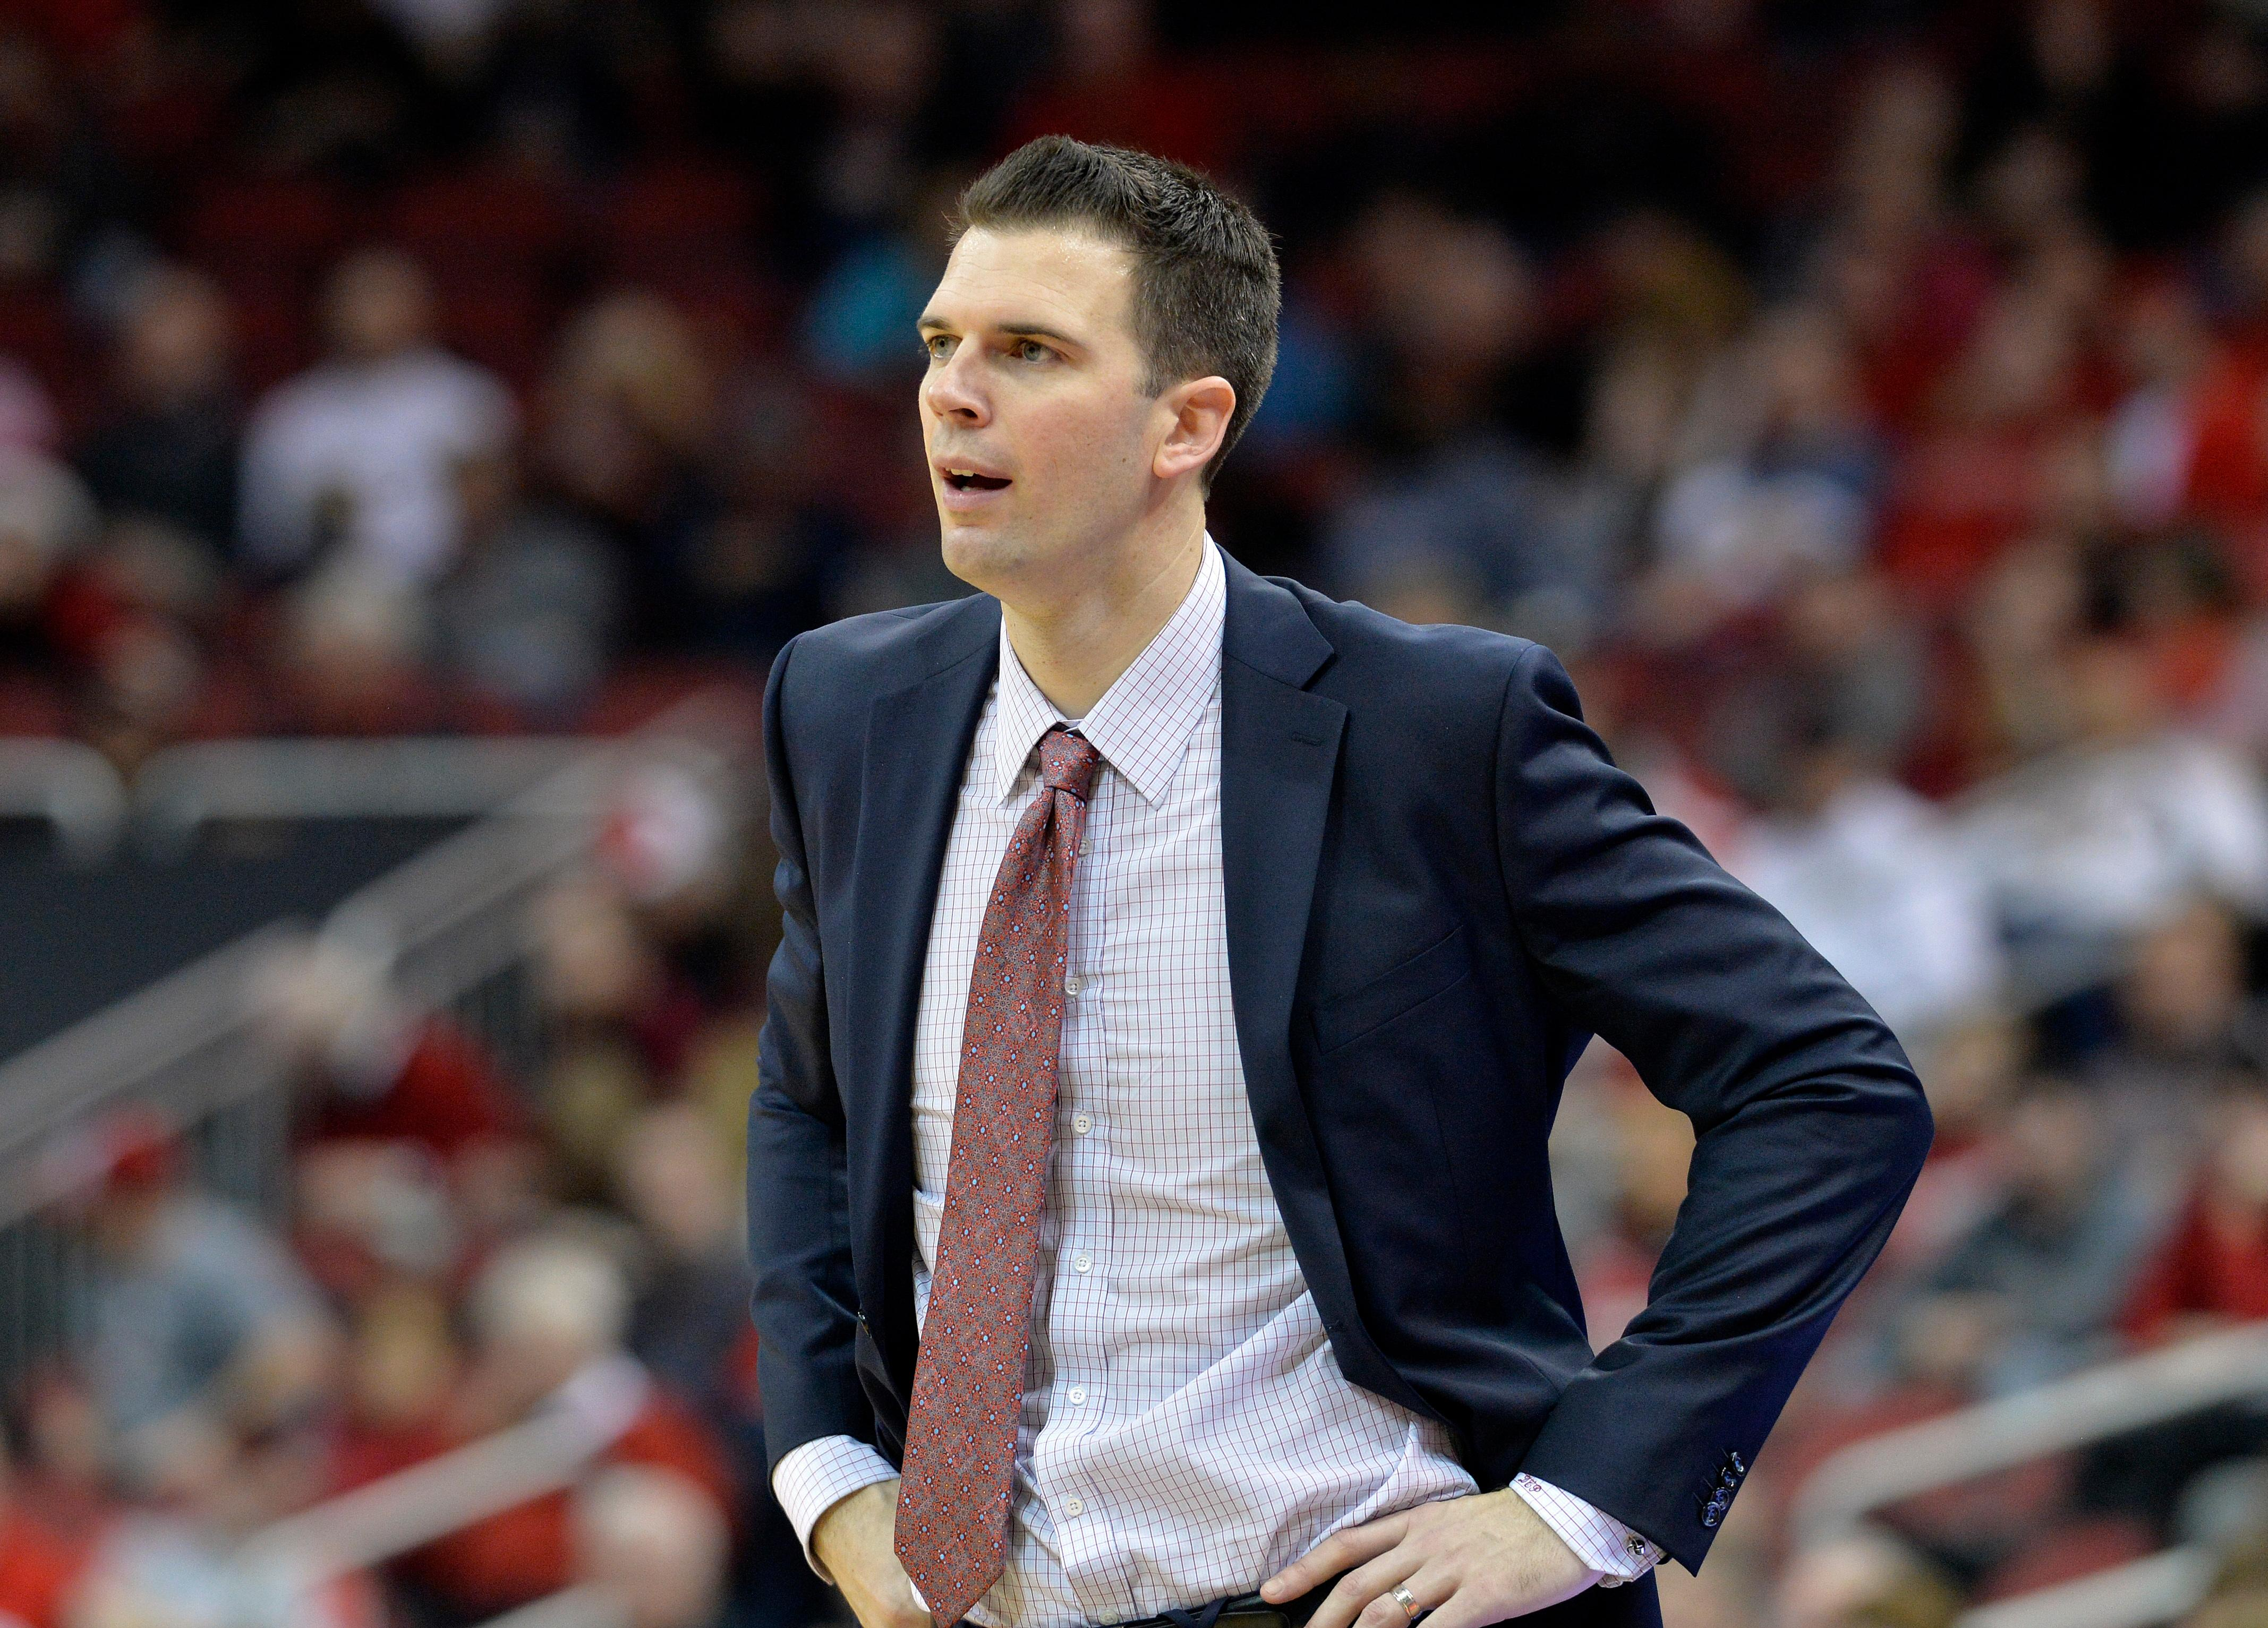 "File- This Dec. 23, 2017, file photo shows Louisville interim head coach David Padgett watching his team during the second half of an NCAA college basketball game in Louisville, Ky.  Padgett said he sees ""progress"" as his Cardinals have won six straight games entering Friday's trip to No. 16 Kentucky. (AP Photo/Timothy D. Easley, File)"